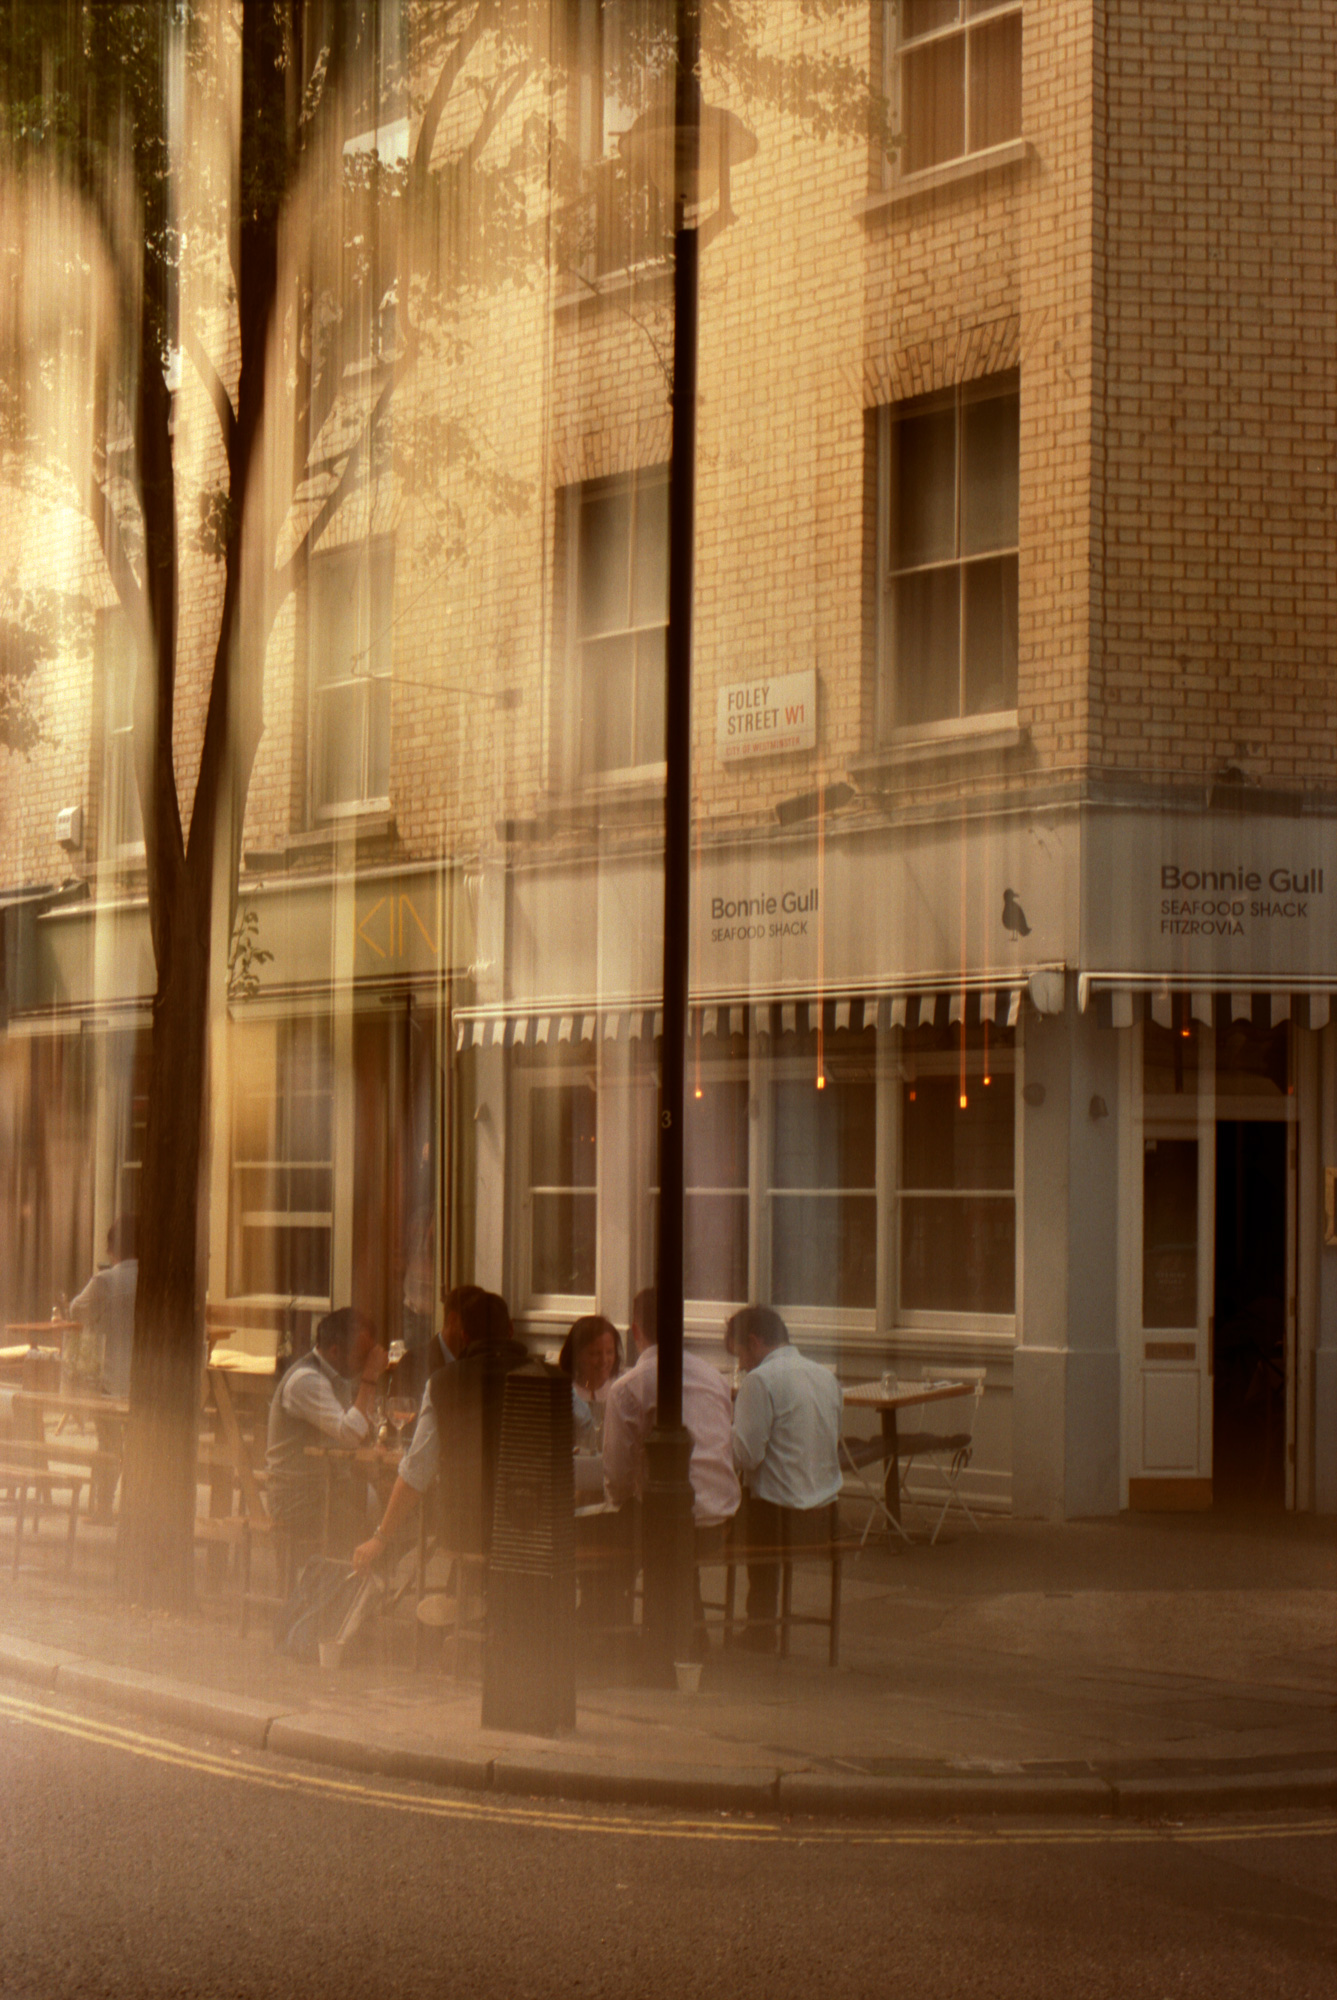 Foley Street, London, Observations Series Photography By Ioannis Koussertari